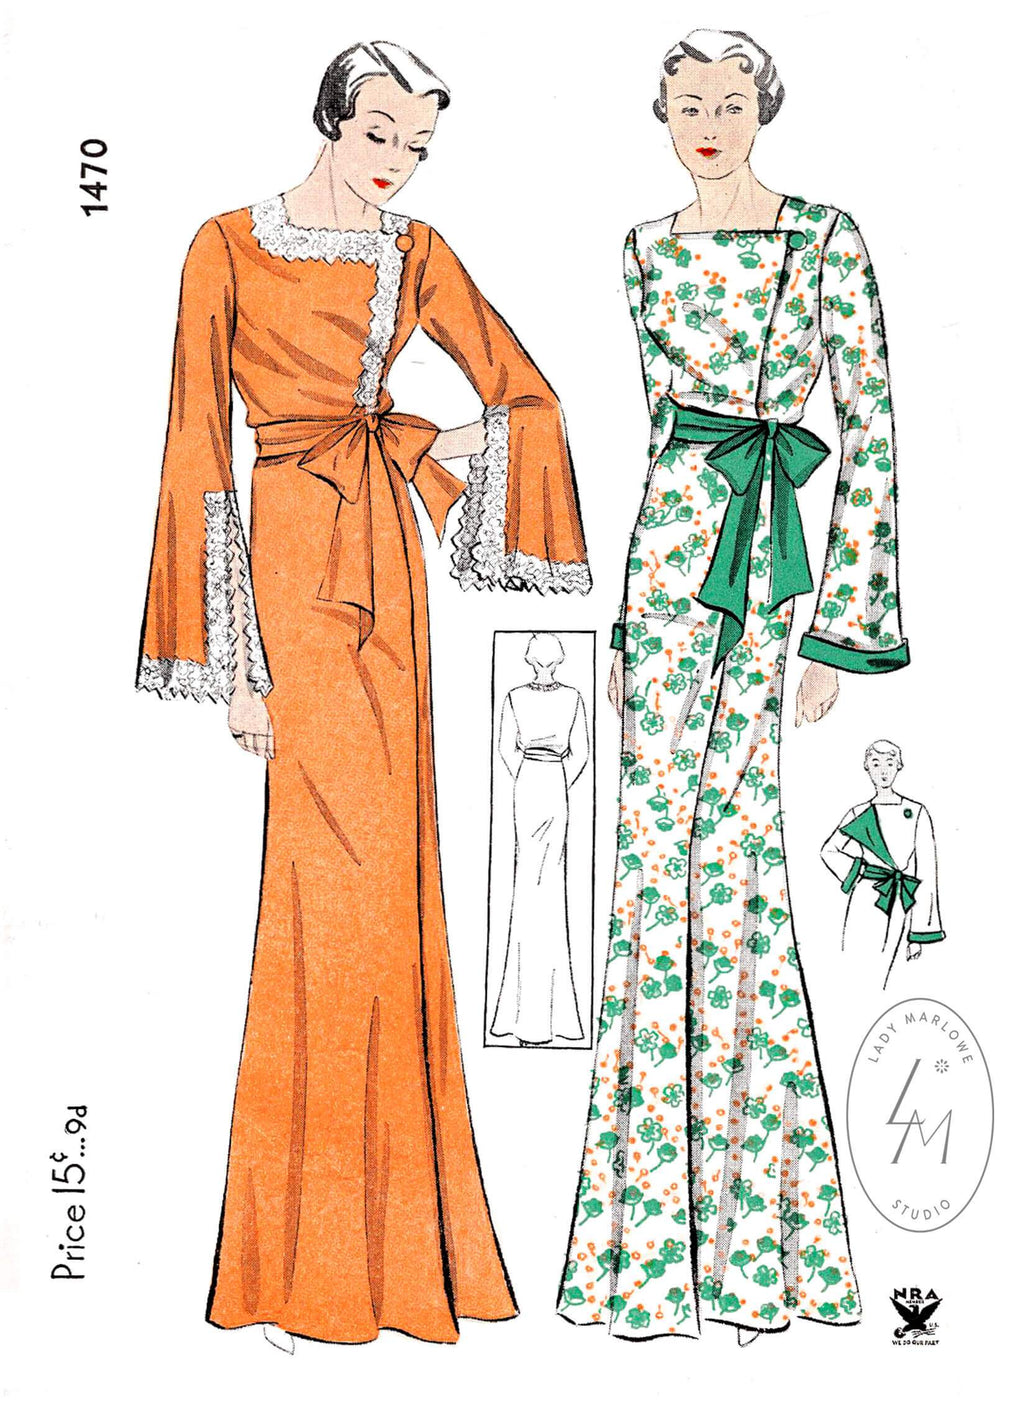 Simplicity 1470 1930s 1934 lace inset robe lingerie sewing pattern reproduction